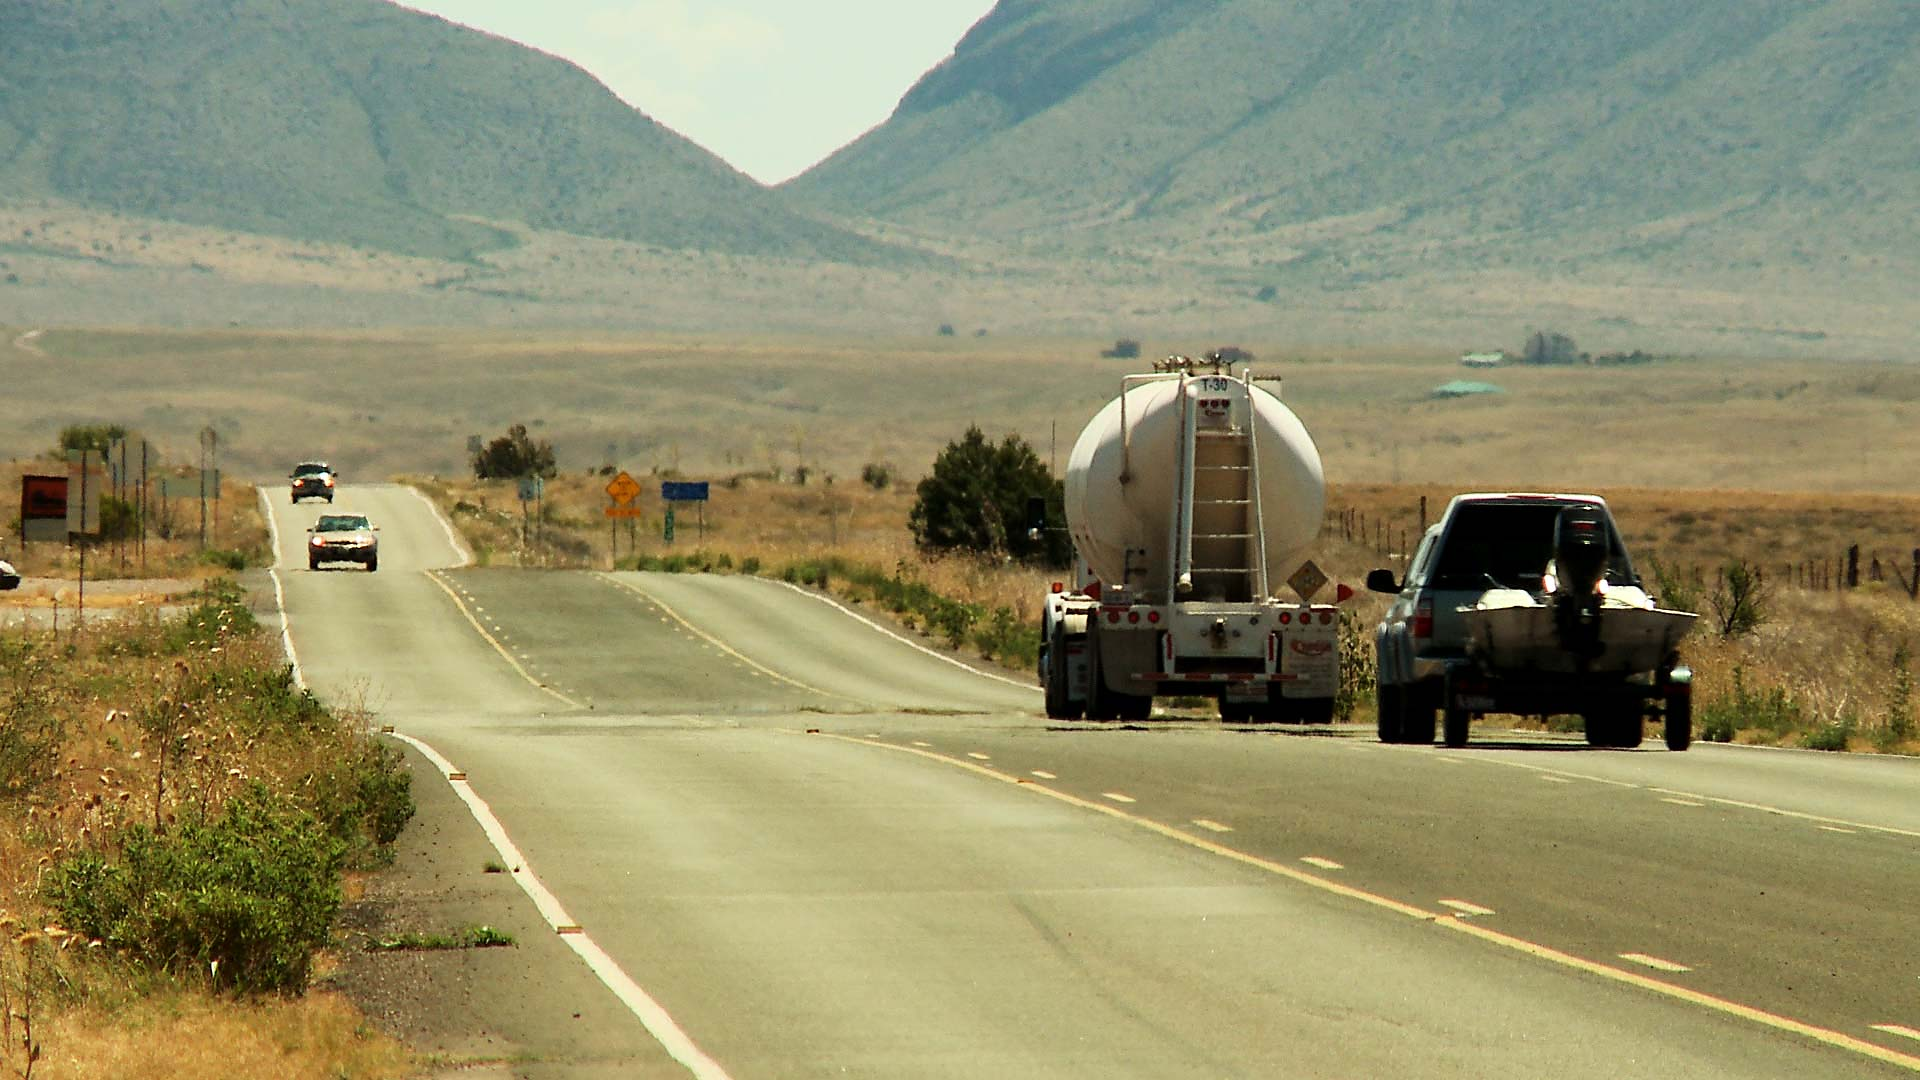 Vehicles travel along a highway near Sonoita, Ariz.